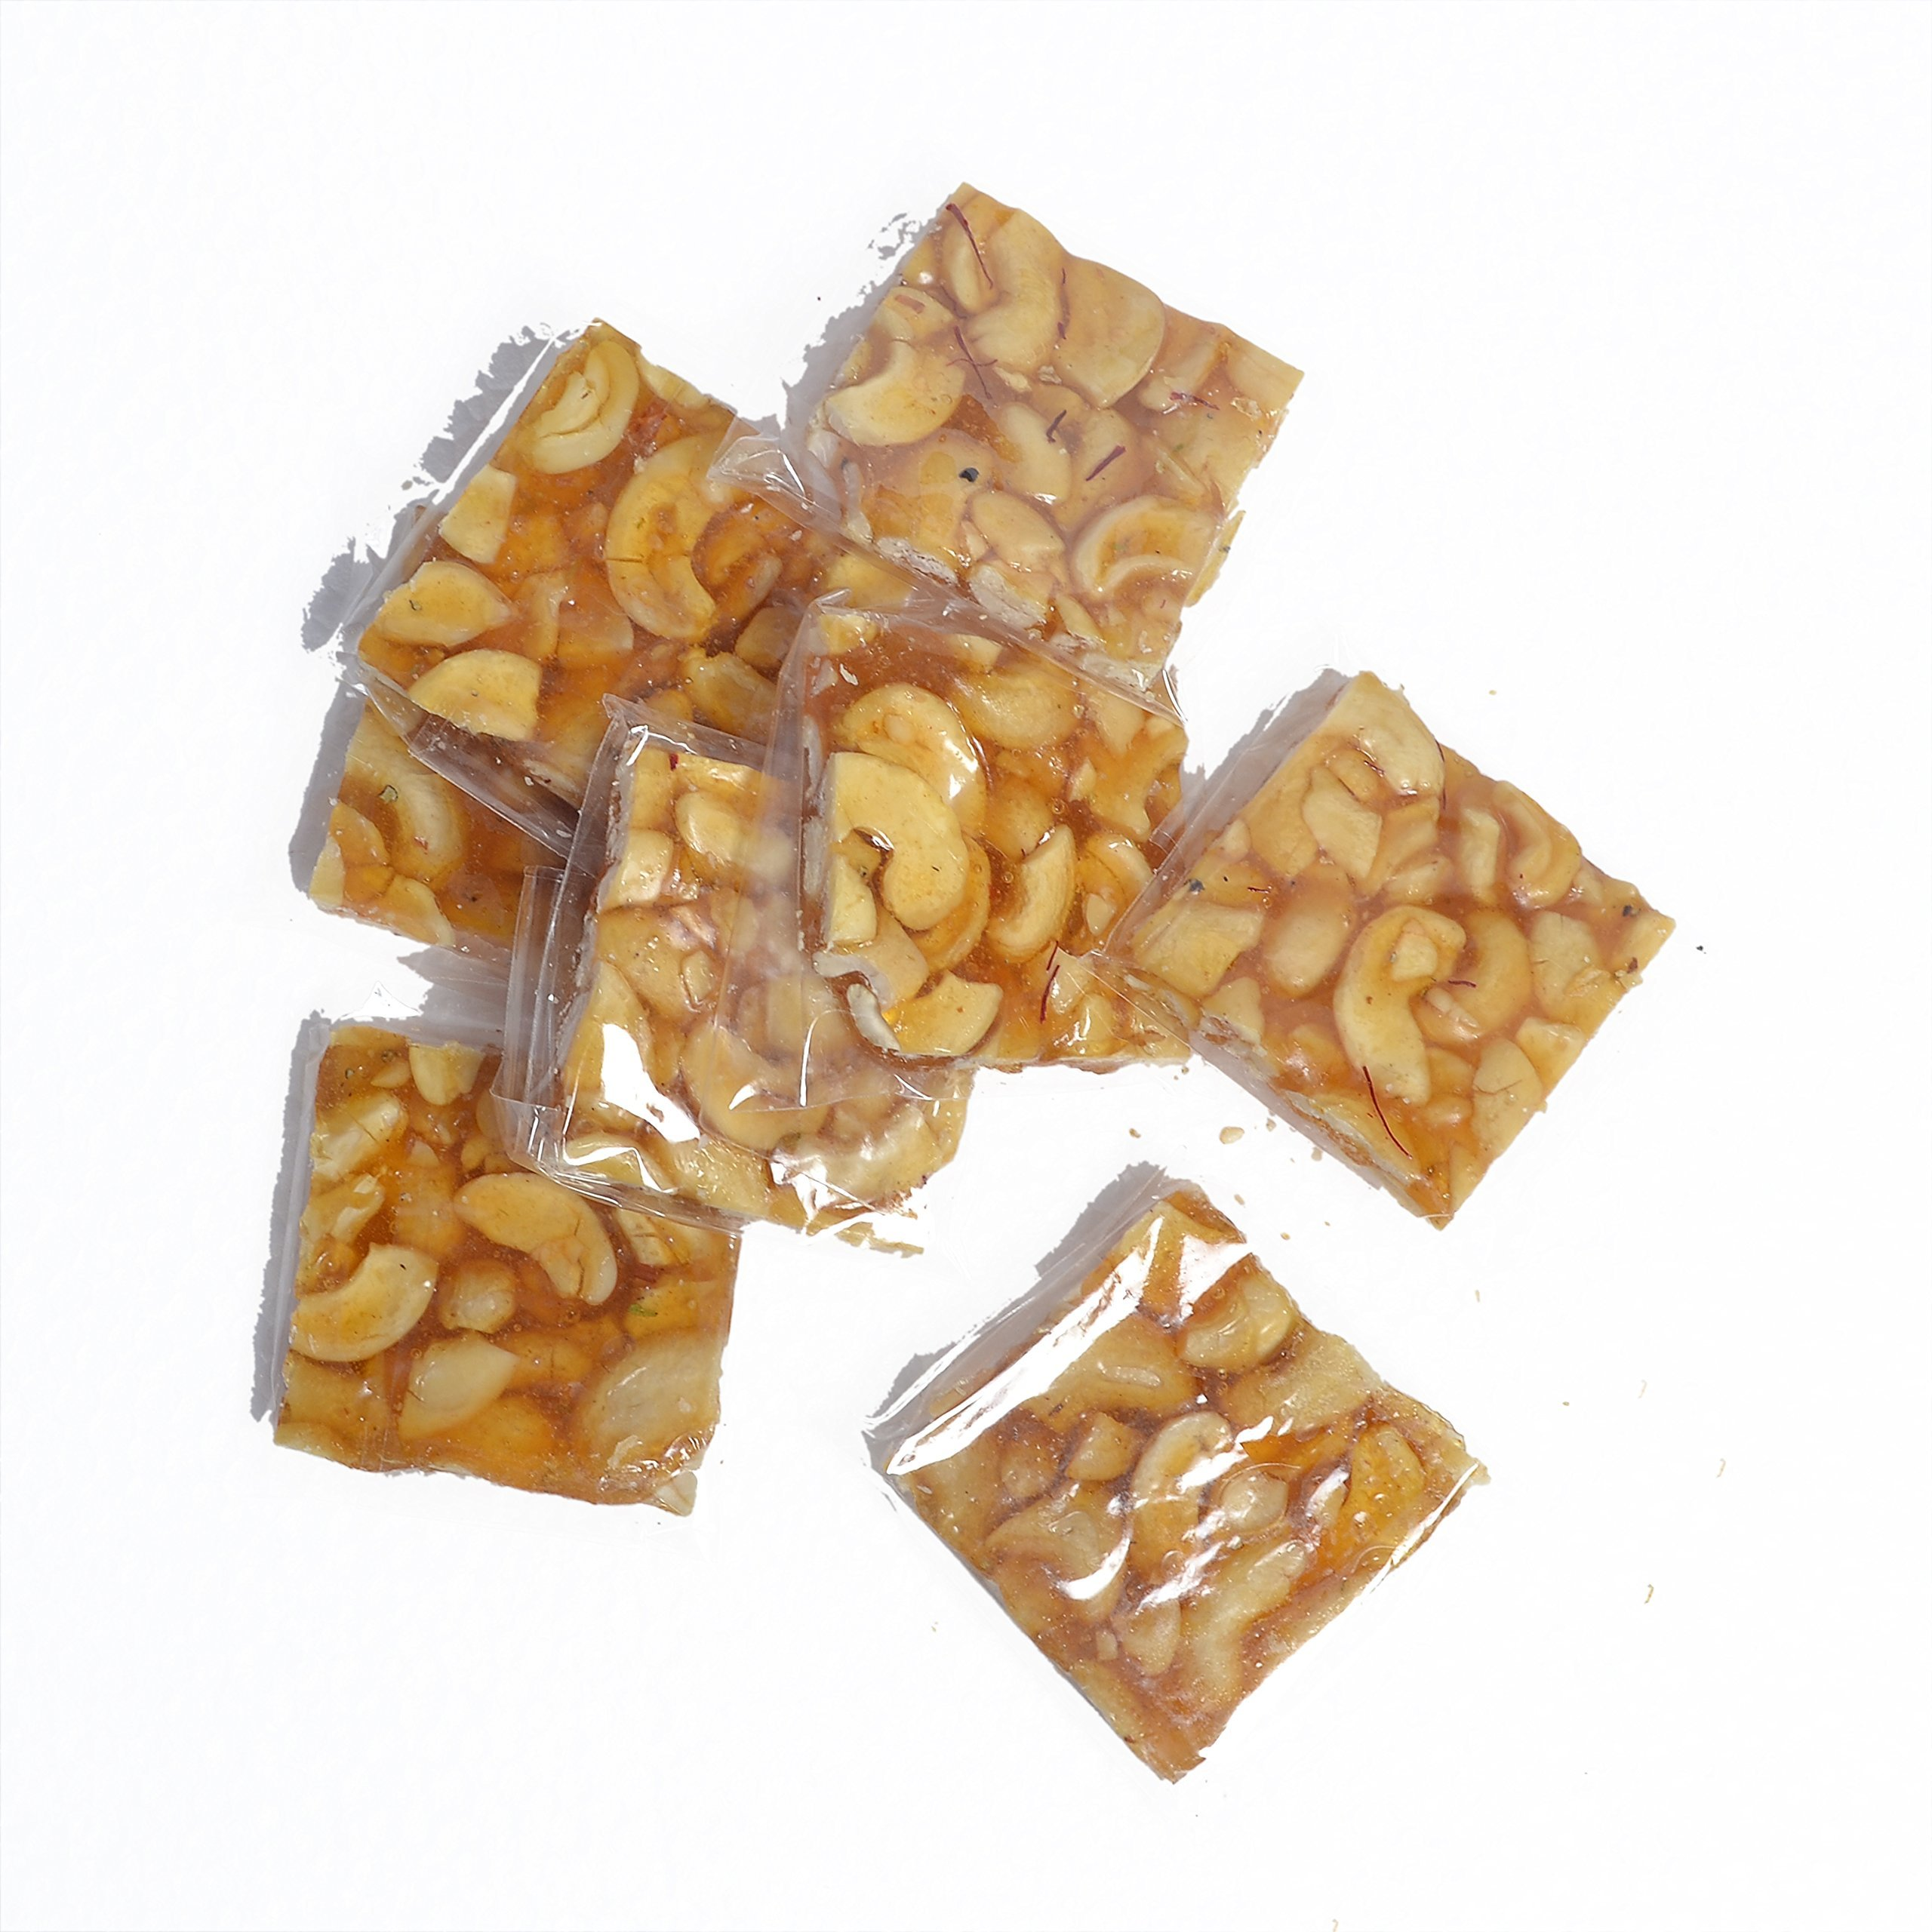 Leeve Dry Fruits Cashew Chikki - 400 Grams by Leeve Dry Fruits (Image #3)